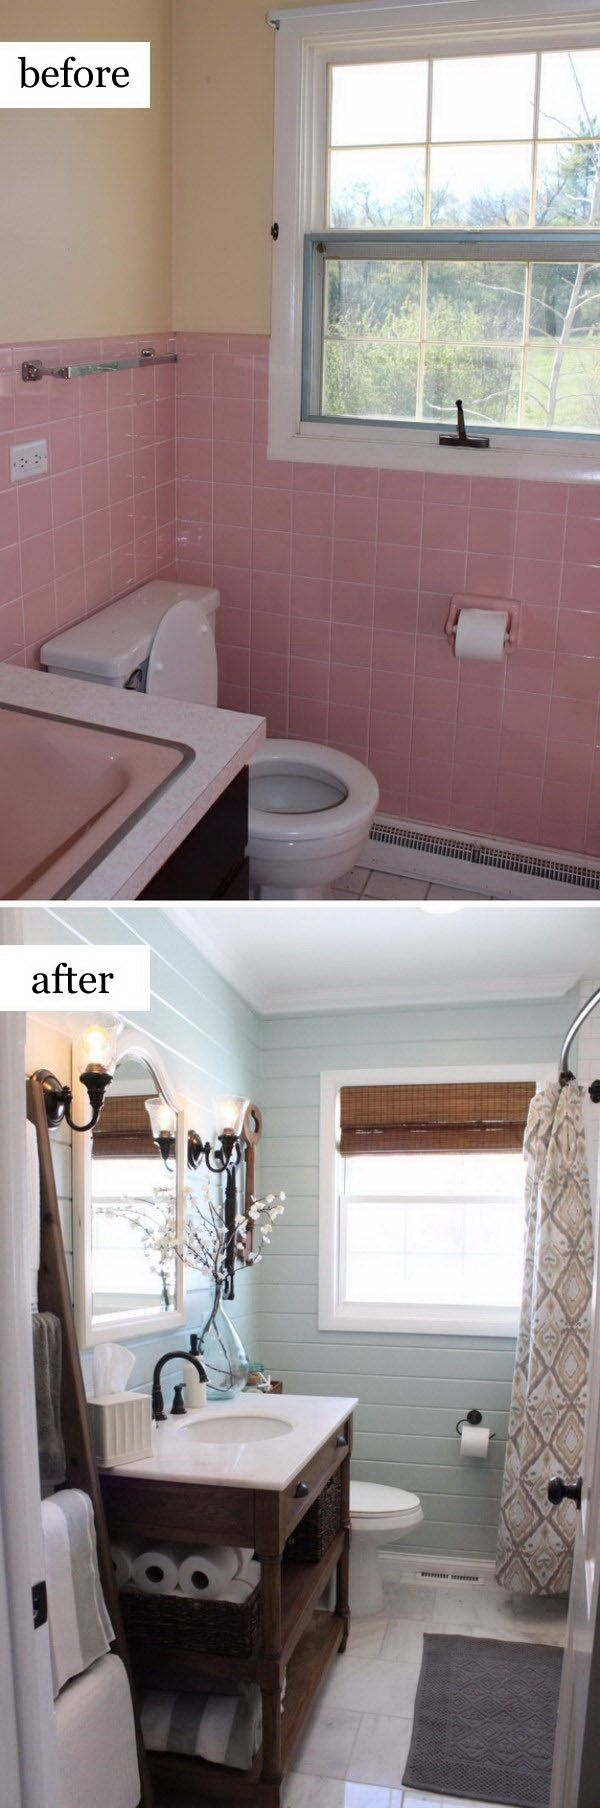 Rustic chic bathroom - Before And After Makeovers 30 Awesome Bathroom Remodeling Ideas